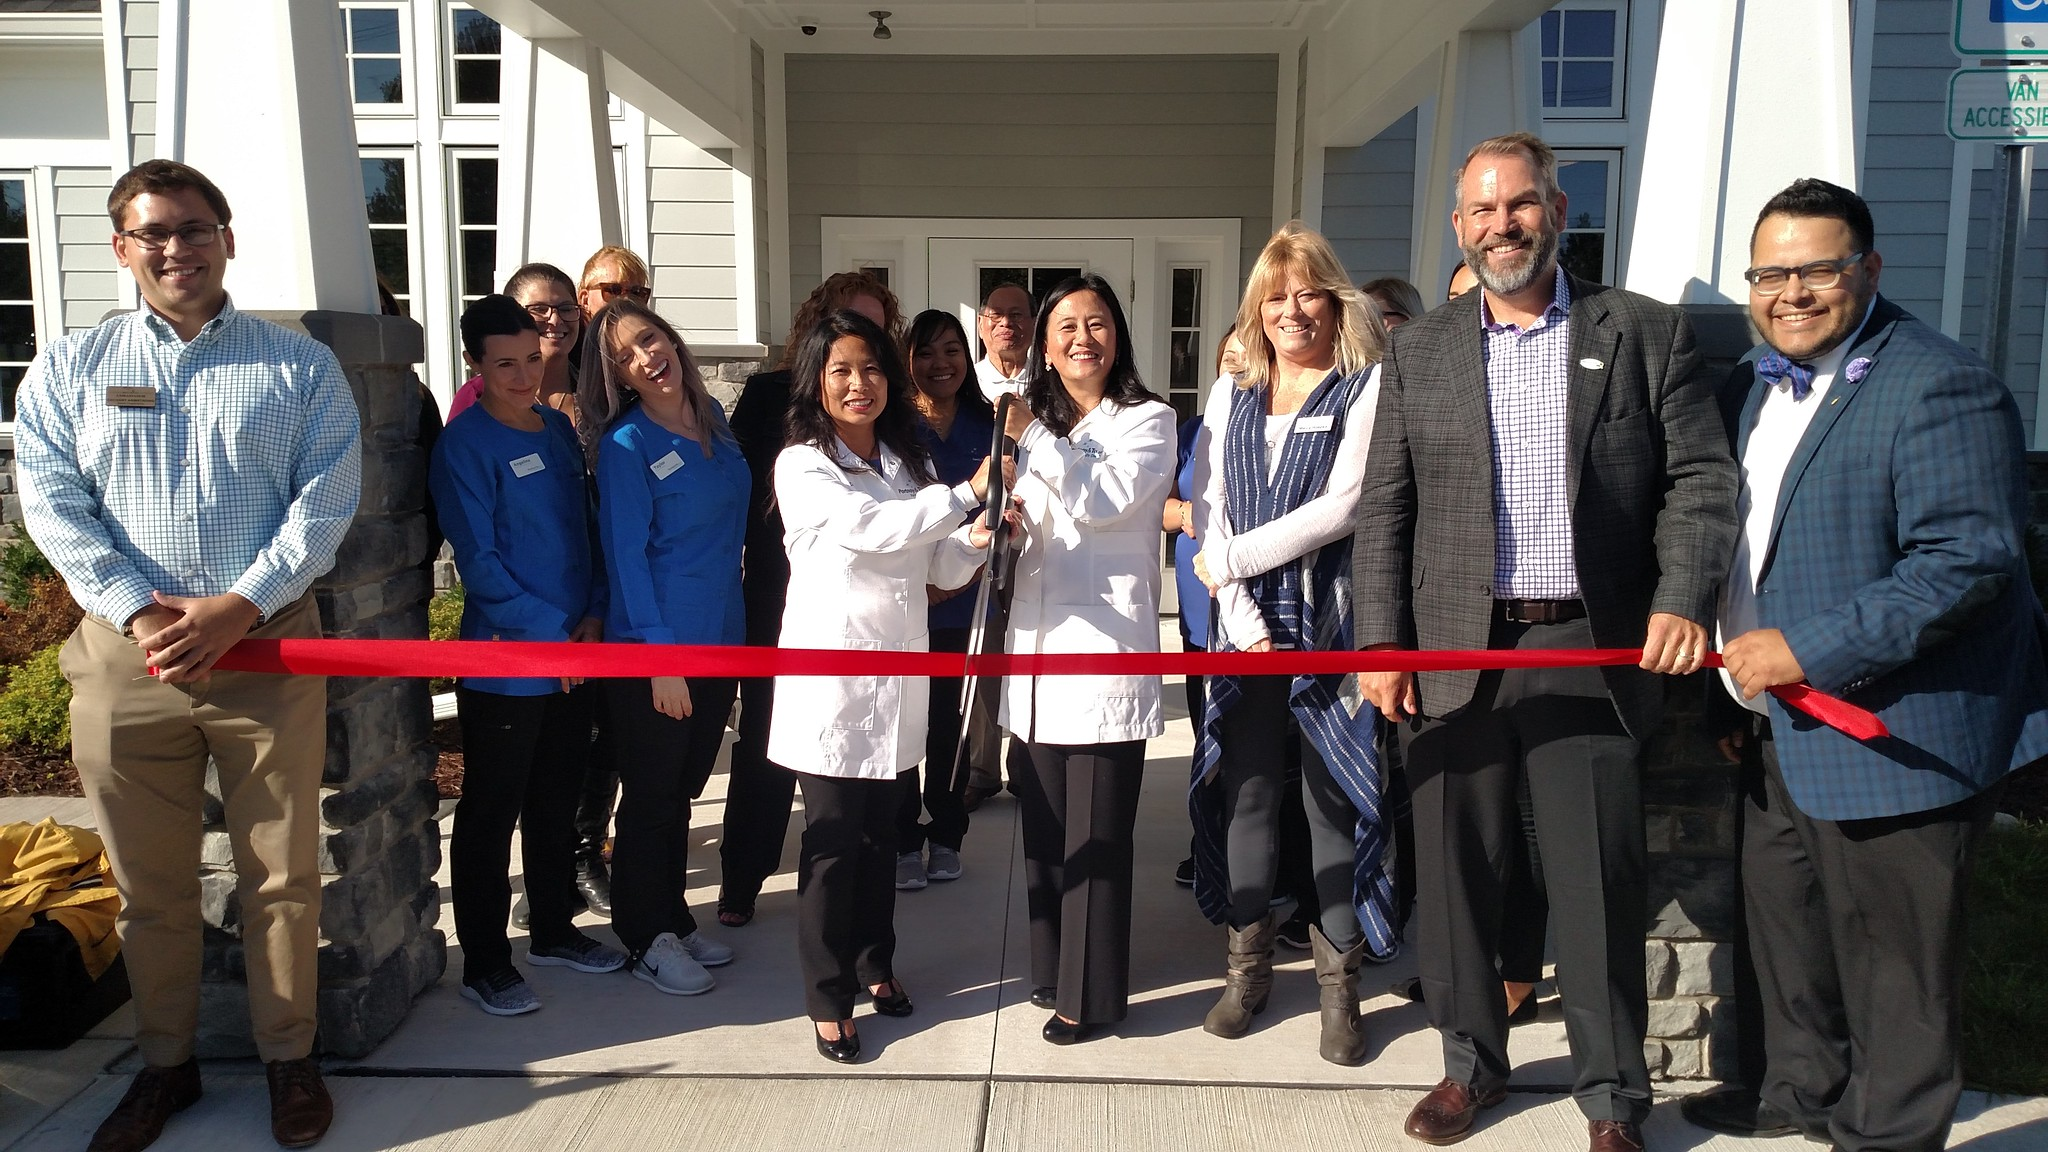 Family Dentistry Opens At New Location in Okemos